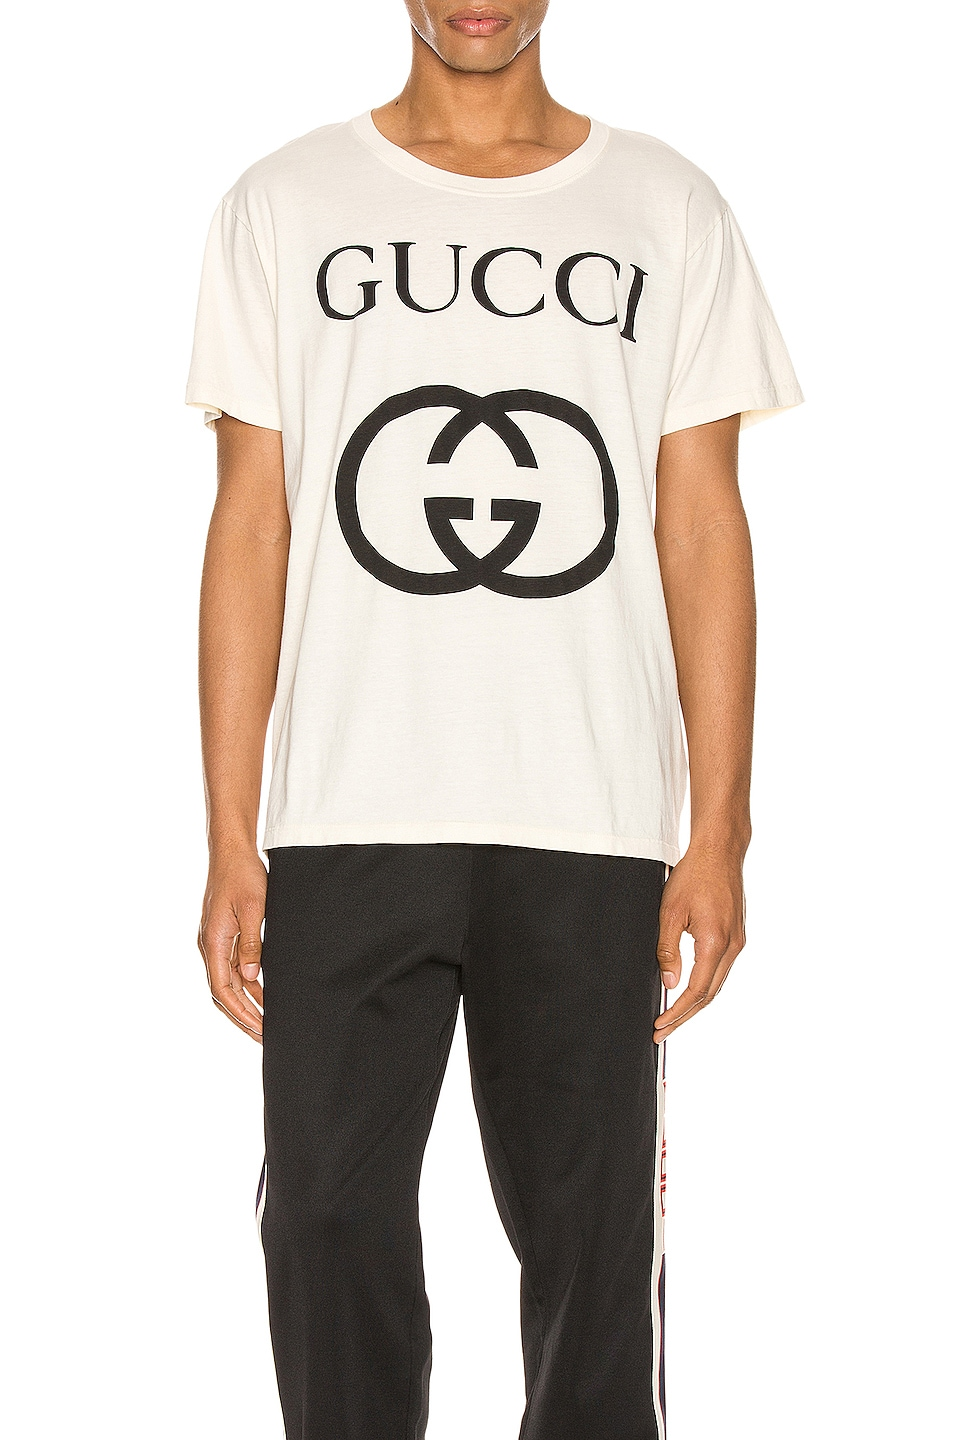 Image 1 of Gucci Oversize Interlocking G Tee in Sunkiss & Black